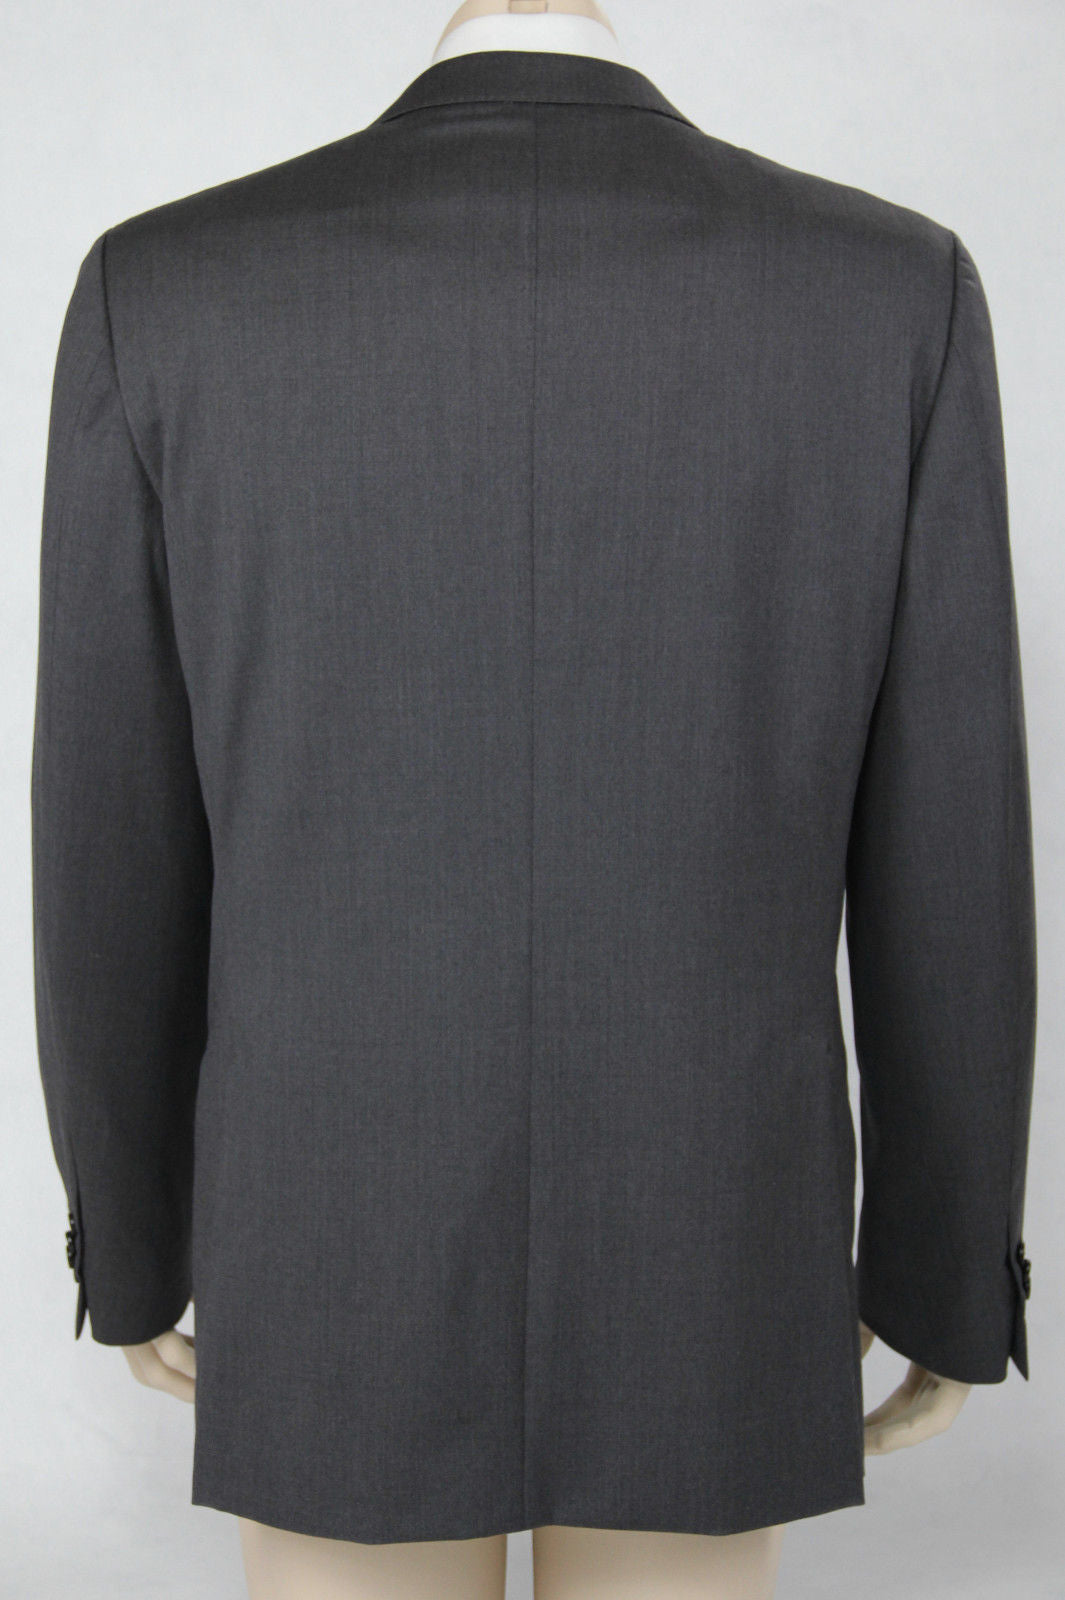 ERMENEGILDO ZEGNA Gray Wool Blazer Jacket, US 42R/EU52 - secondfirst